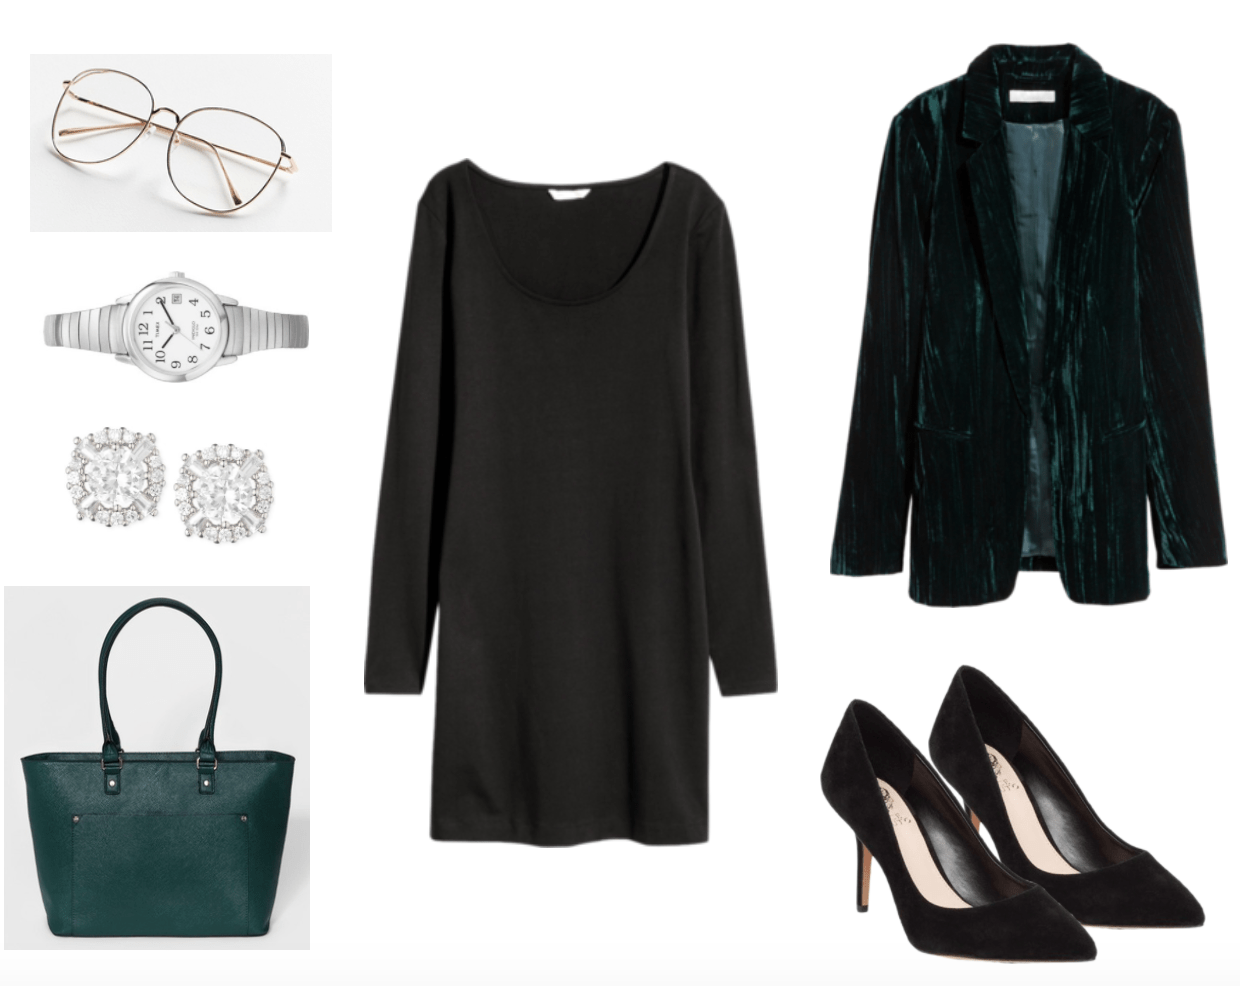 Little black dress outfit: LBD with teal blazer and tote for work or internship.